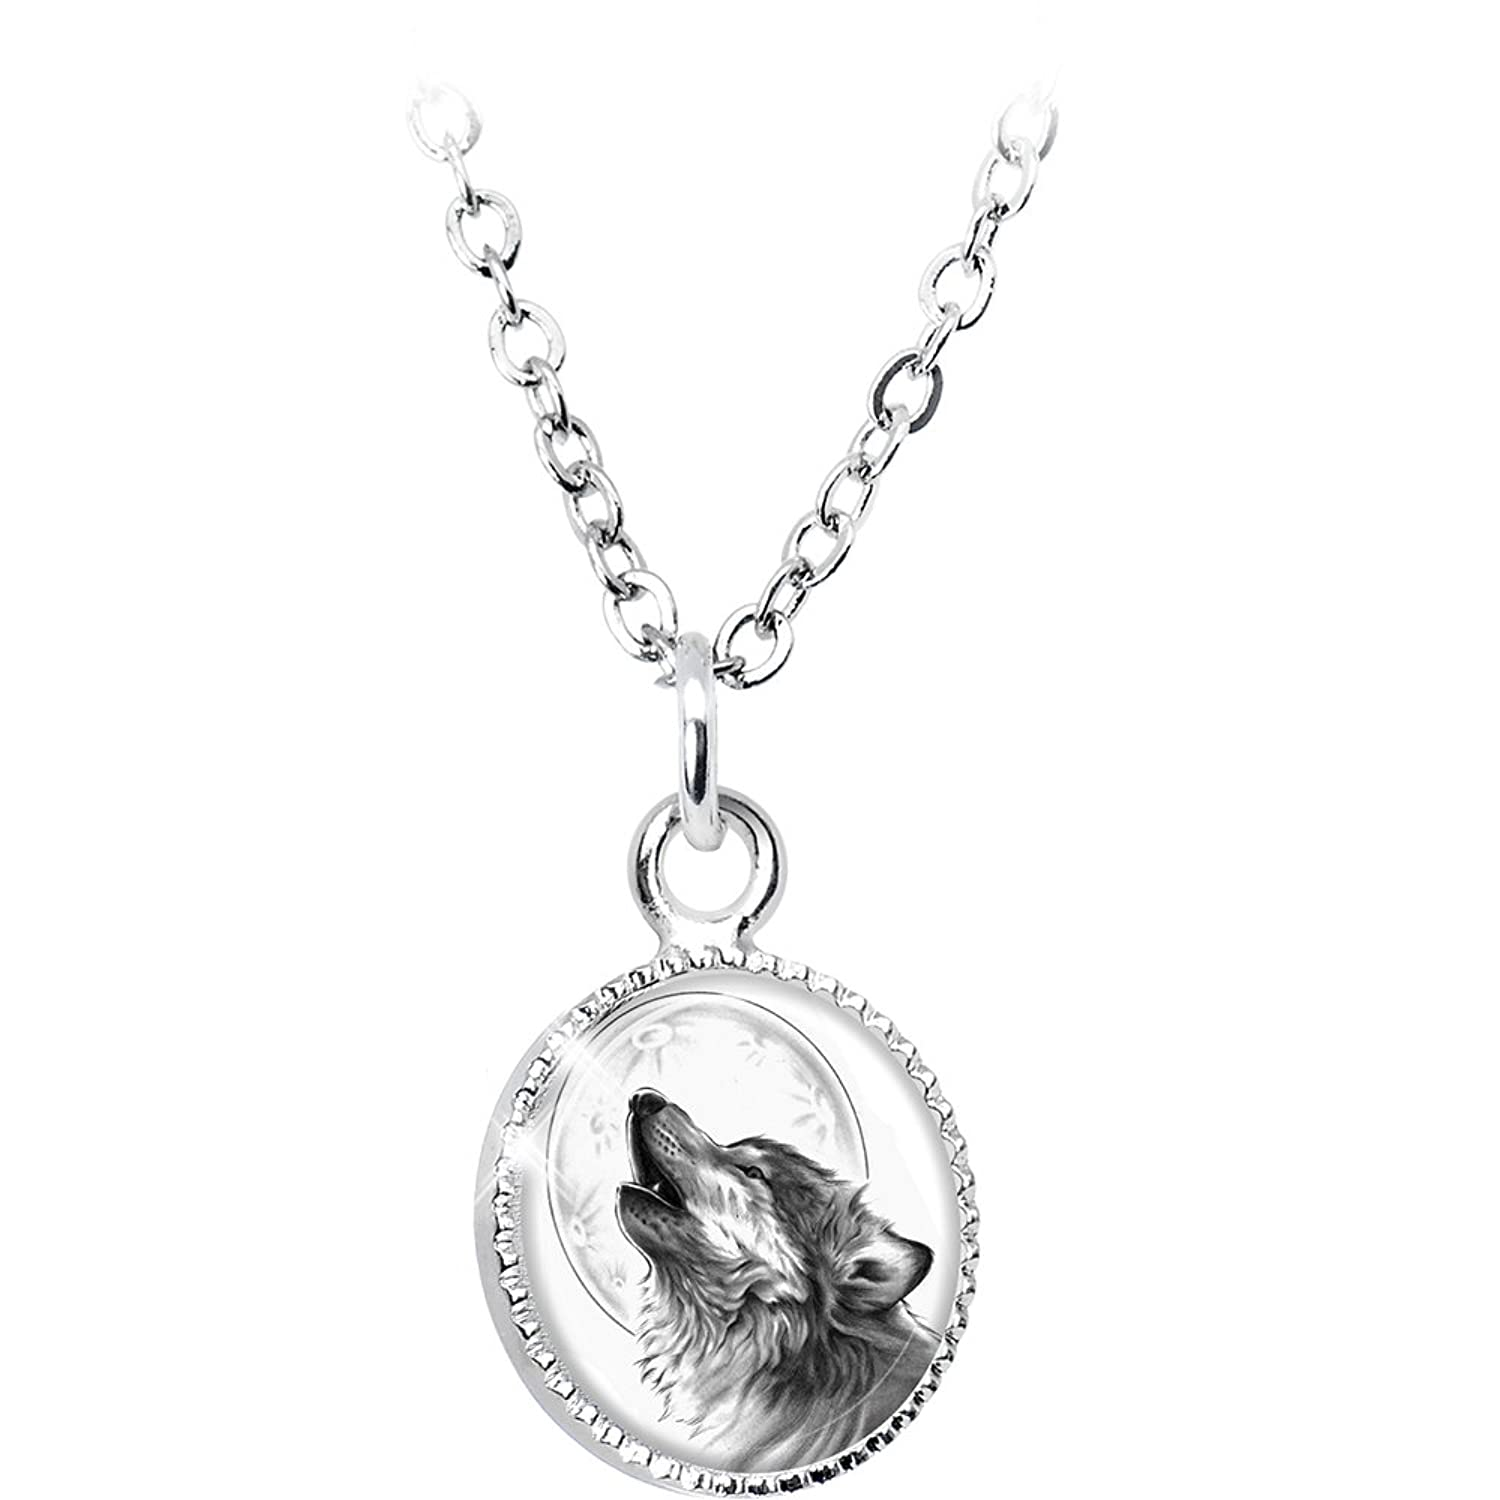 Amazon.com: Body Candy Howling Wolf Pendant Necklace: Jewelry